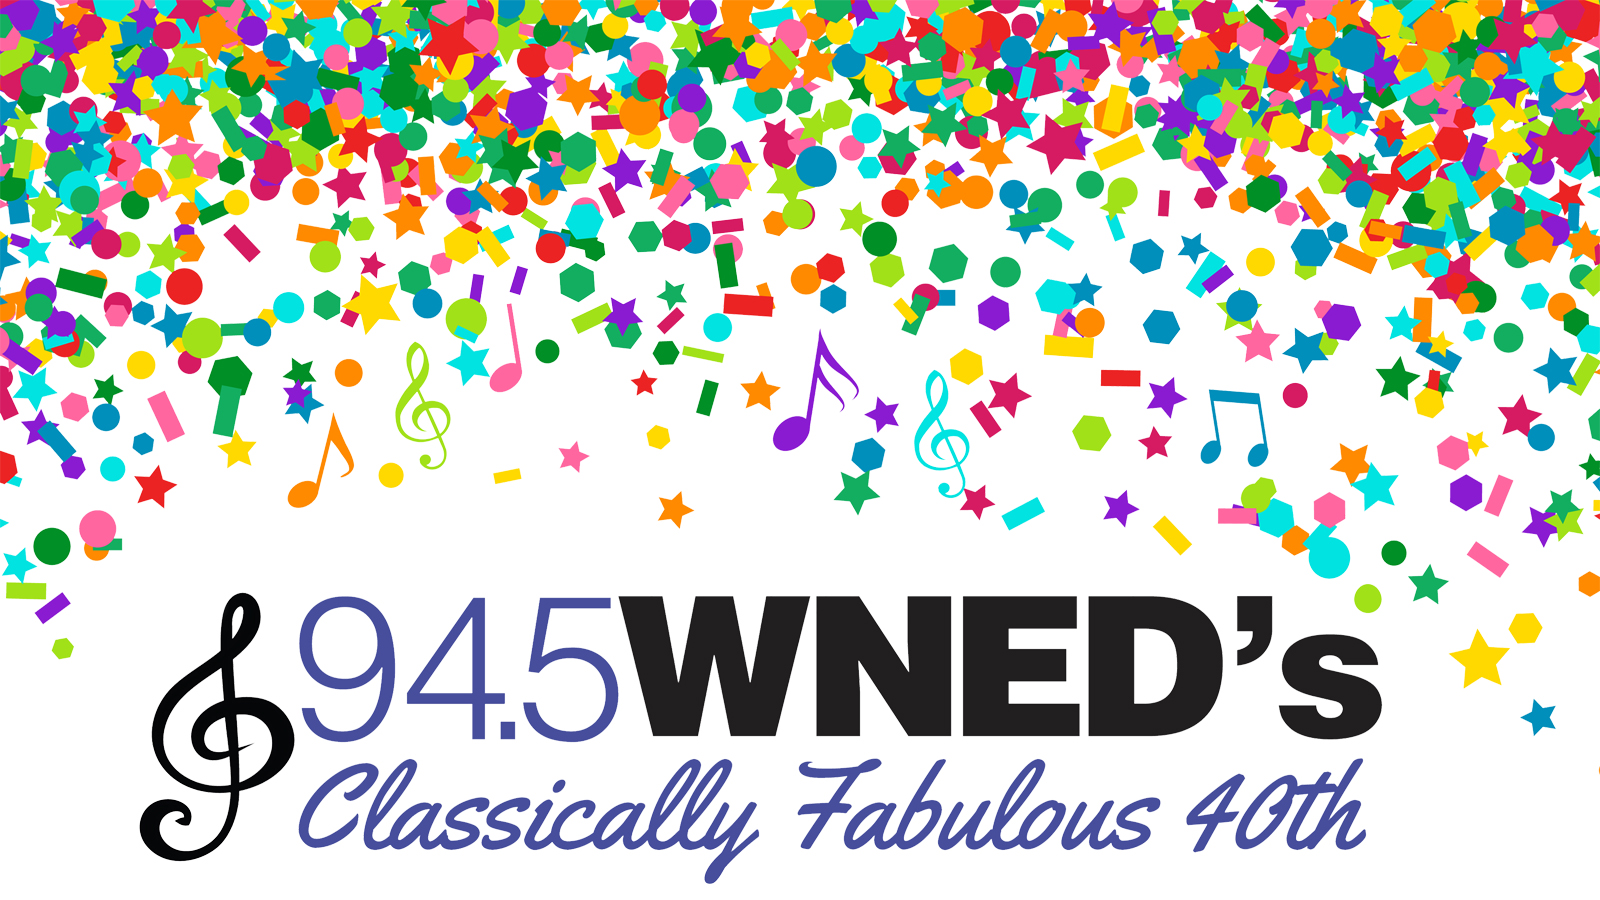 WNED's Classically Fabulous 40th |Saturday, November 4th